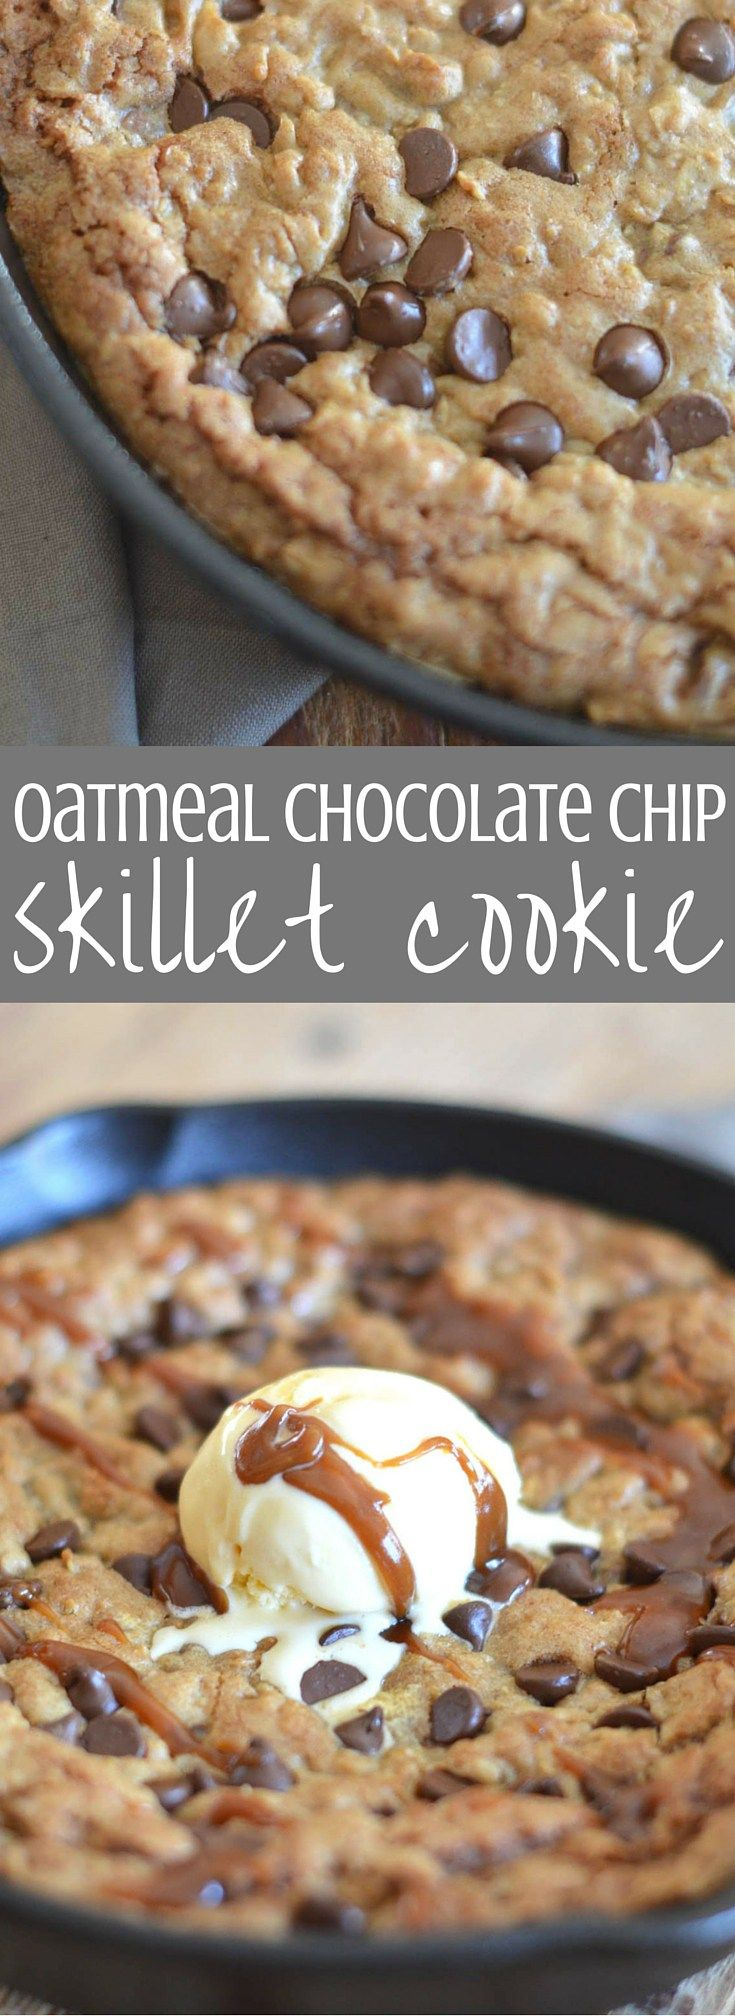 Small Batch Chocolate Chip Skillet Cookie | Recipe | Skillets ...